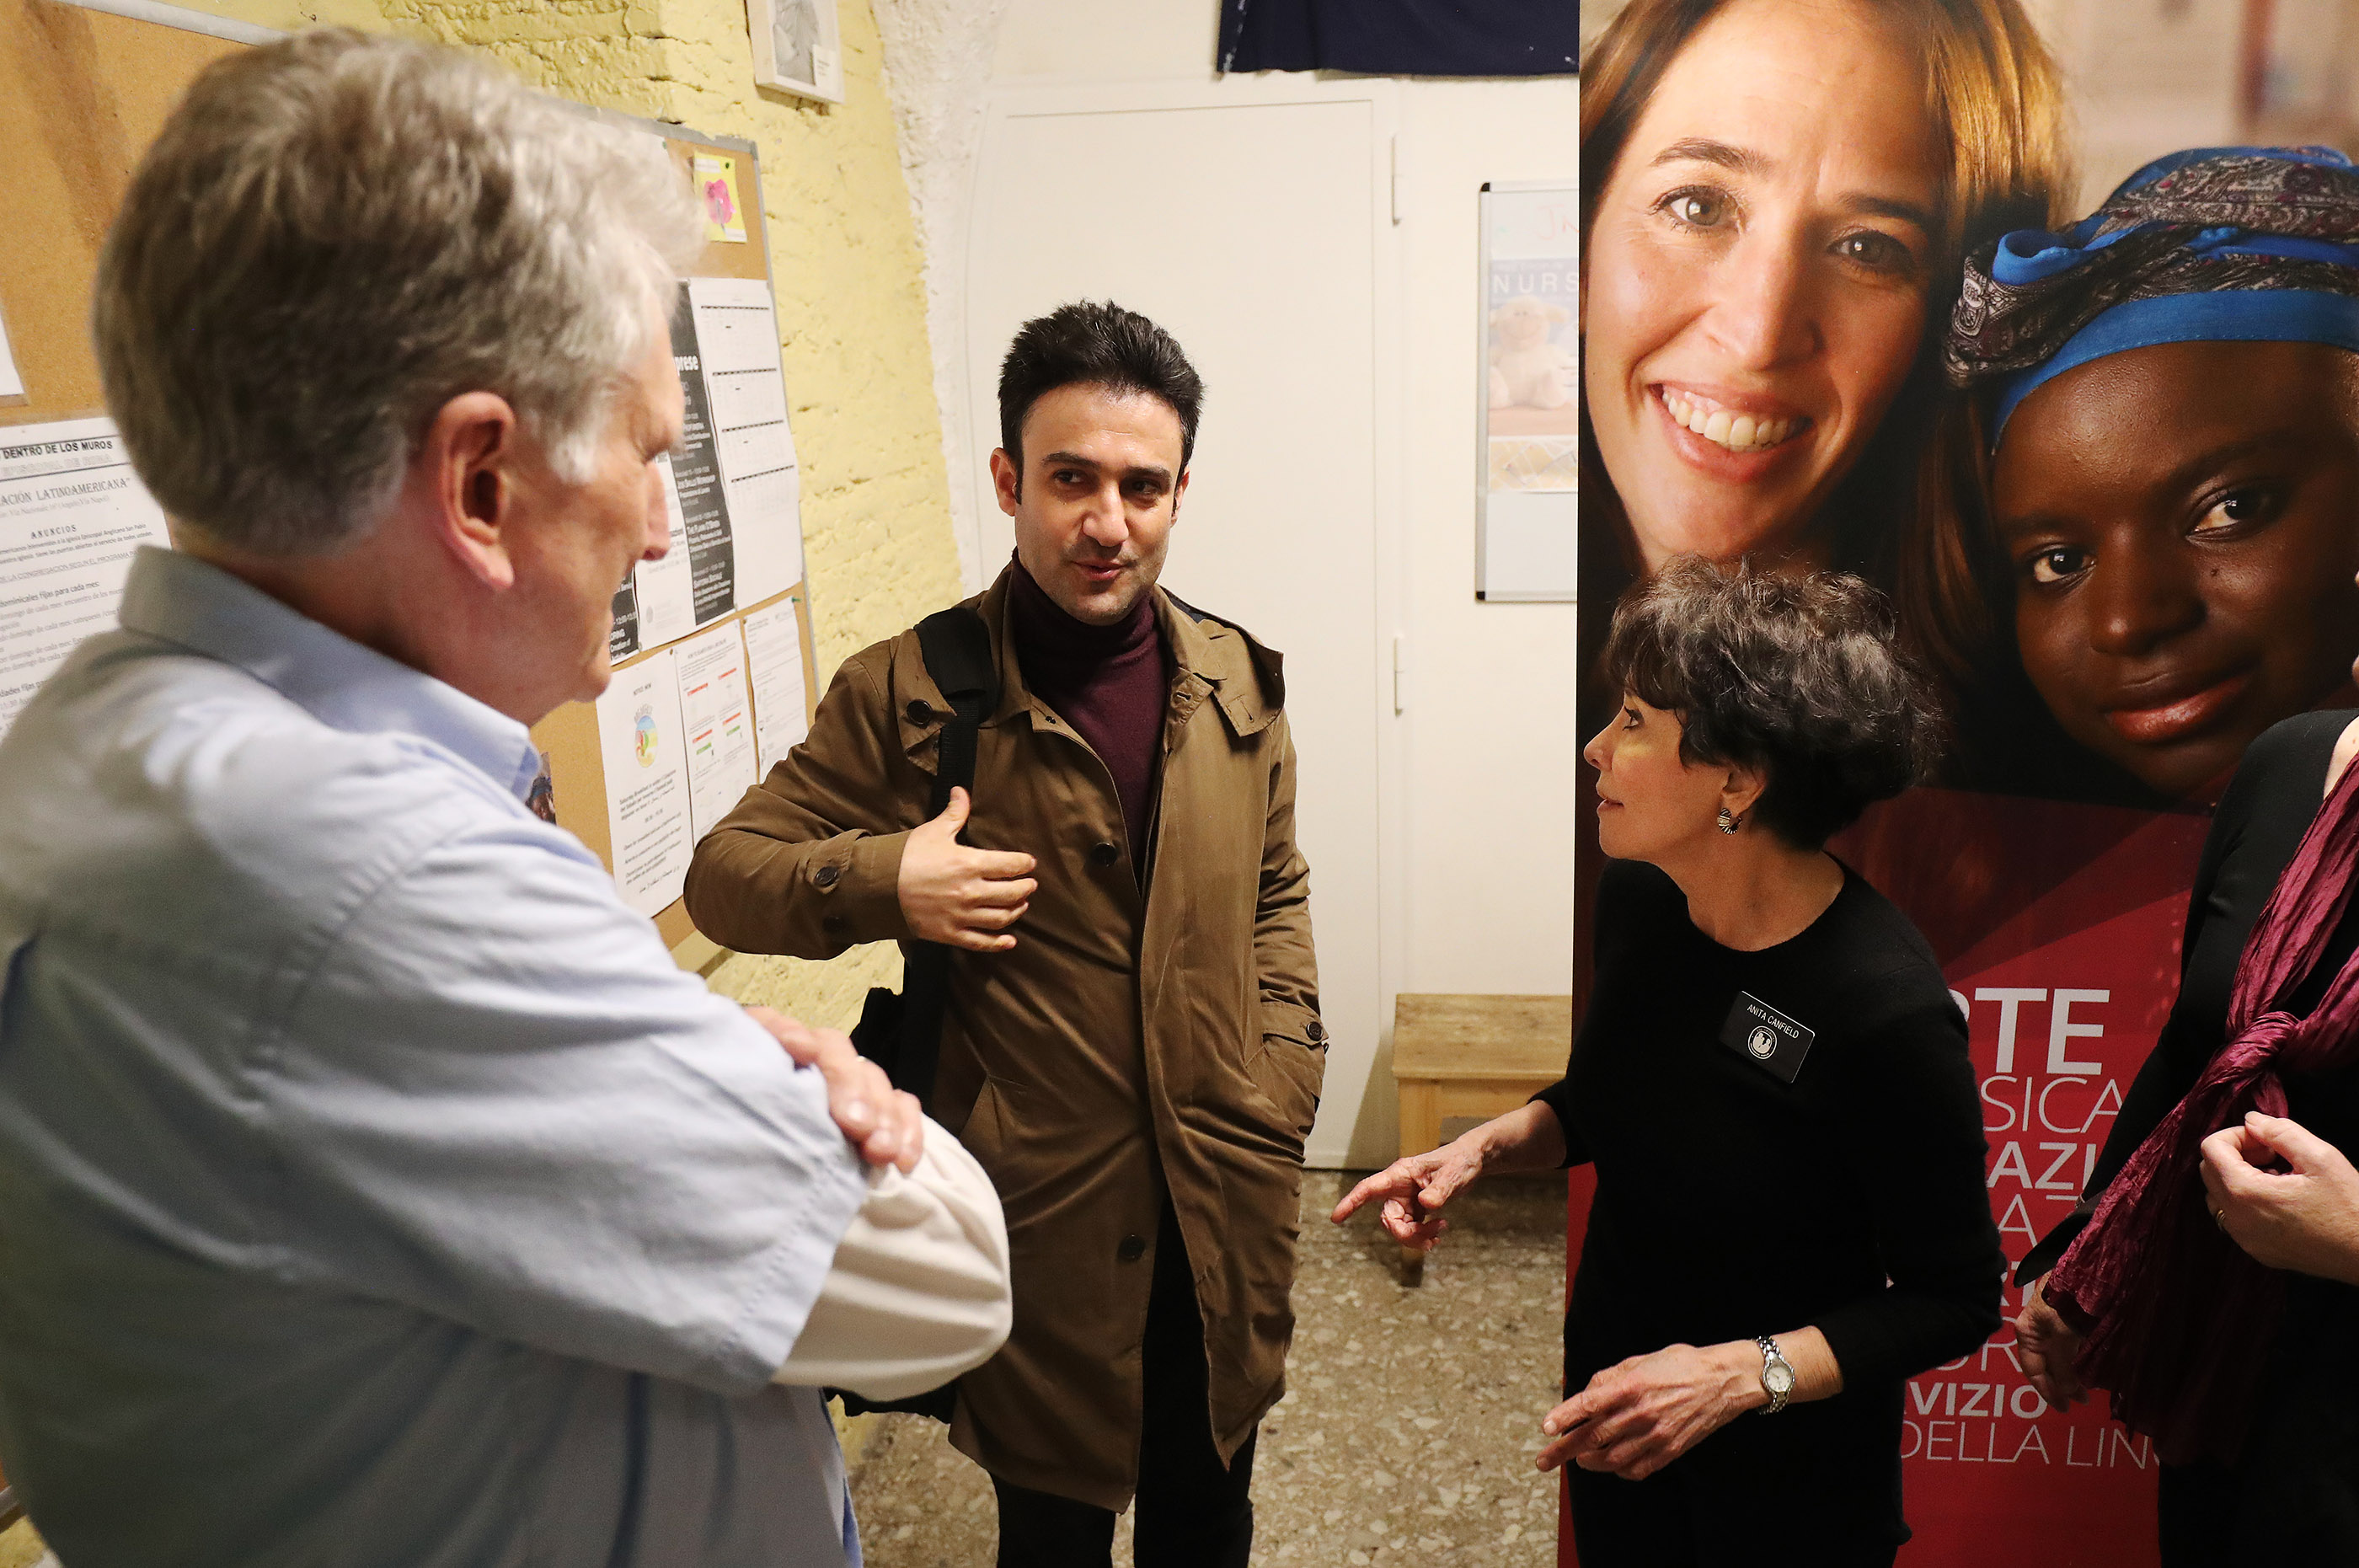 Latter-day Saint Charities missionaries Steve and Anita Canfield talk with Iraqi refugee Imad Mosa at St. Paul's Within the Walls Episcopal Church in Rome, Italy on Thursday, March 7, 2019. The Church of Jesus Christ of Latter-day Saints partners with the Catholic church to help refugees.